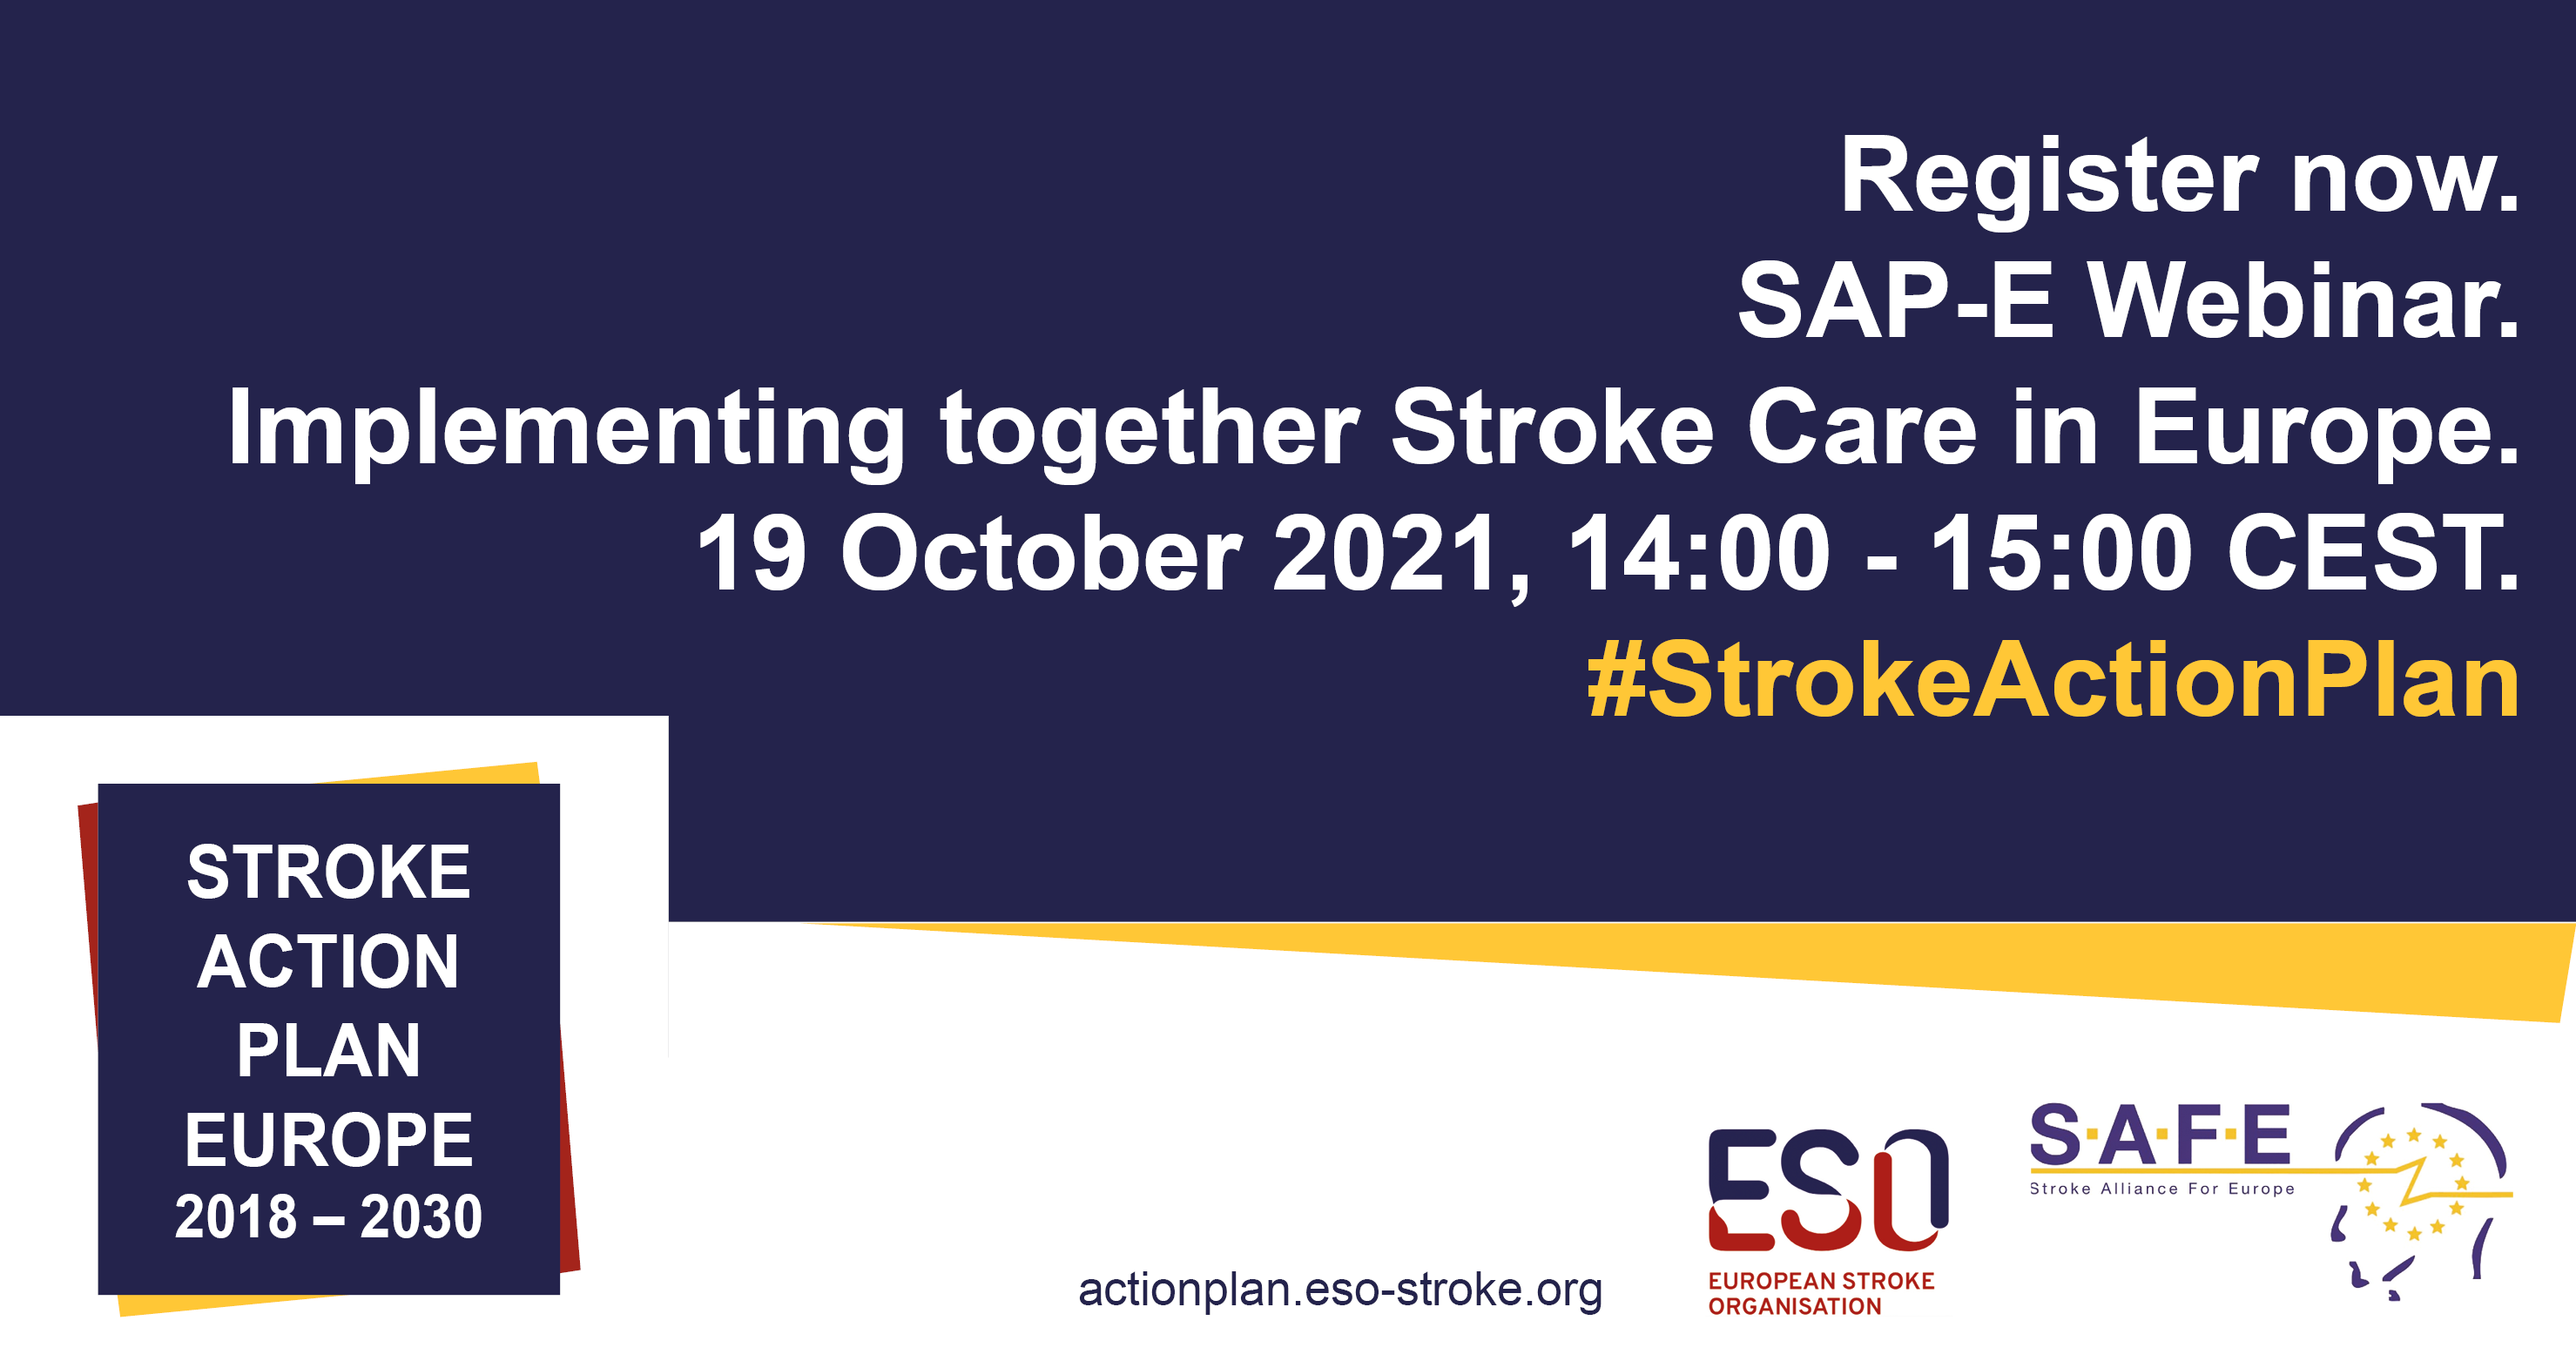 Stroke Action Plan for Europe (SAP-E) Implementing together Stroke Care in Europe